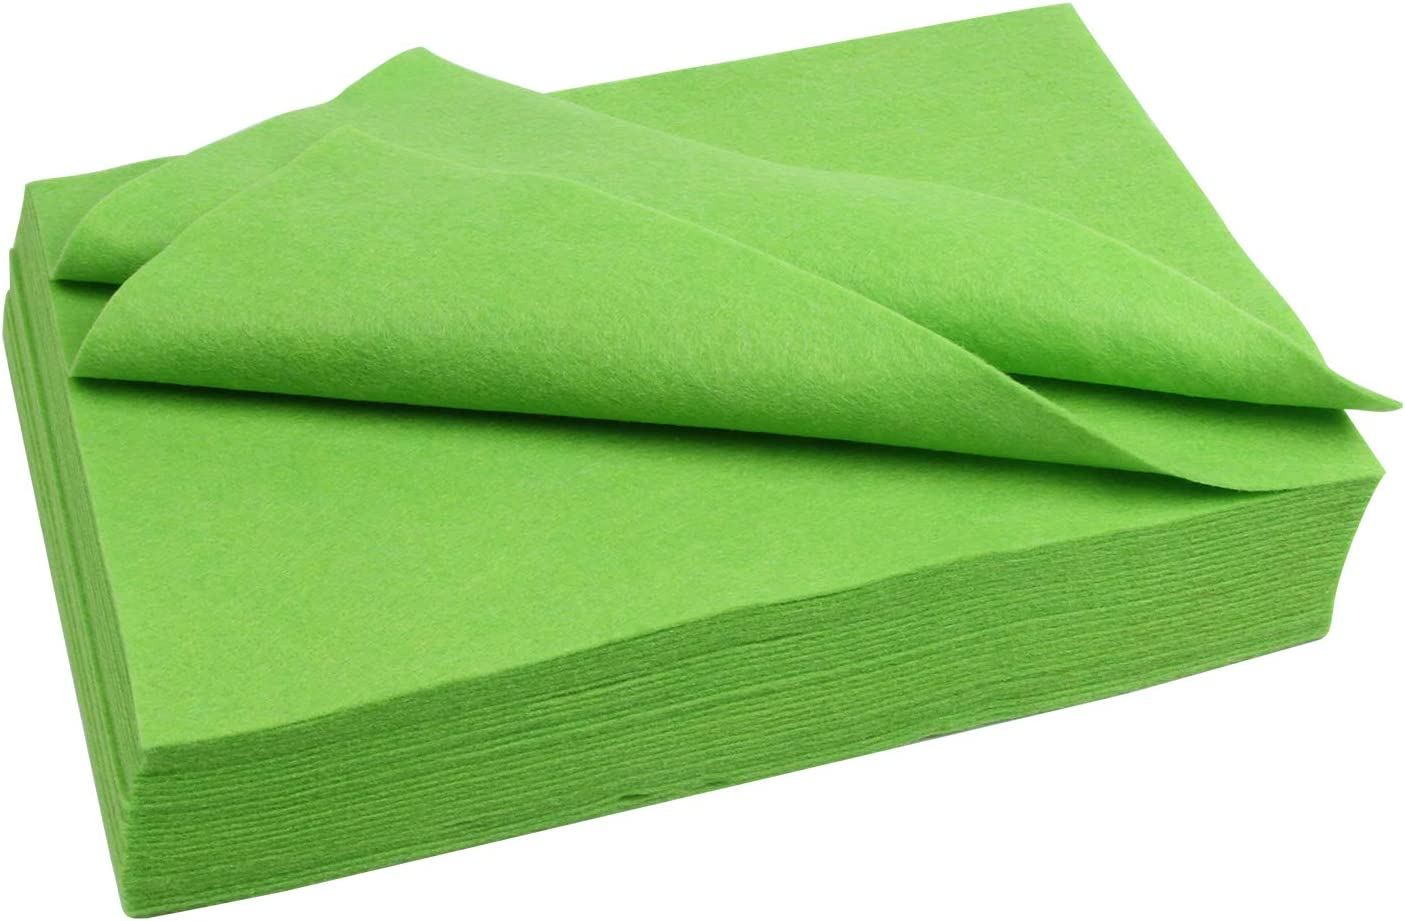 Polyester Felt Sheet Flexible 30 Sheets 20 x 30 cm(7-7/8 X 11-7/8 in 1/16 Inch Thick) (Apple Green)